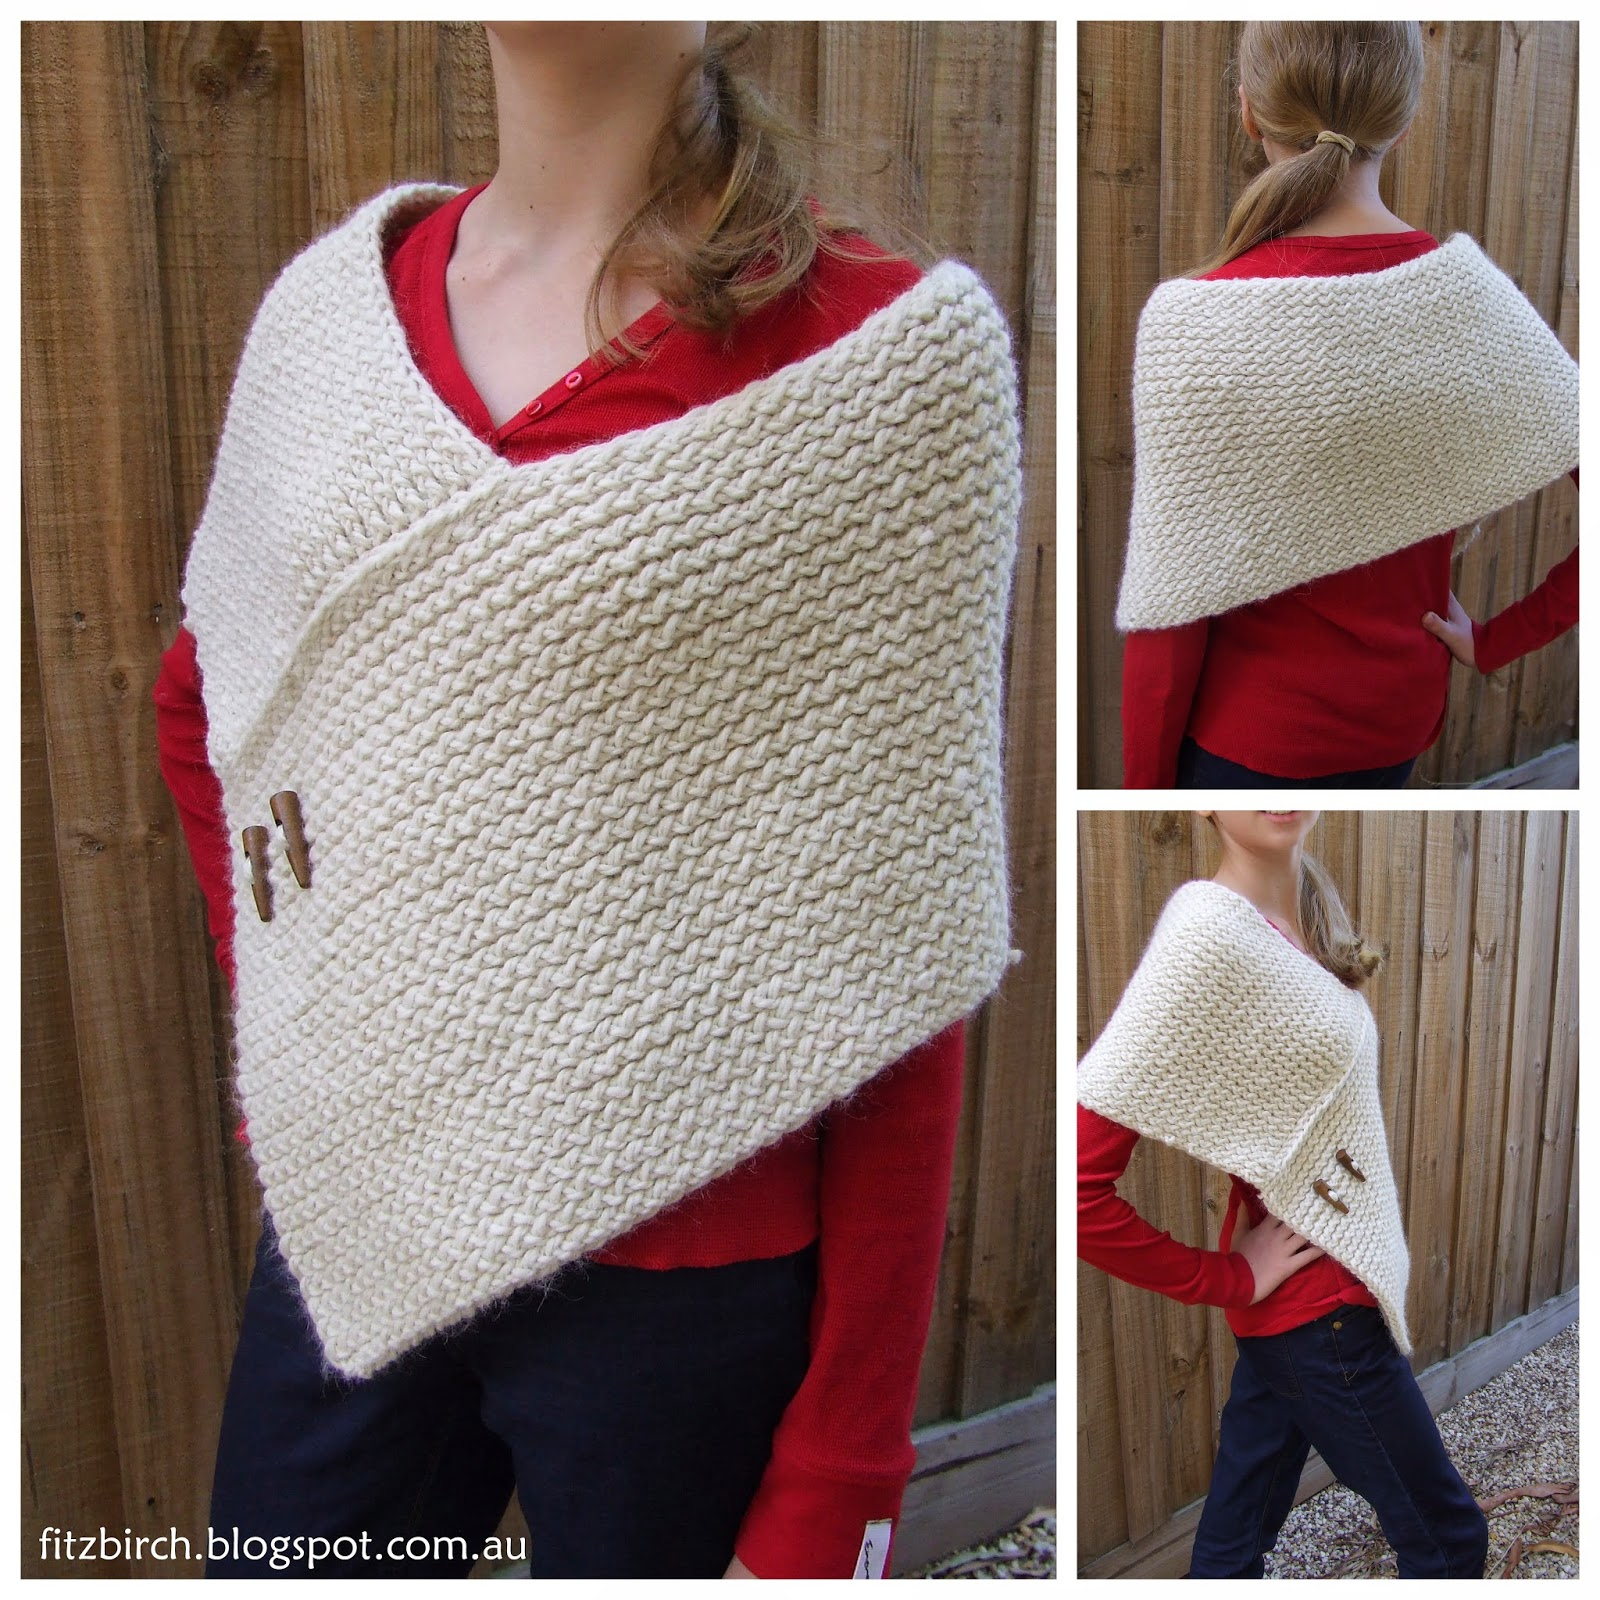 Knitting Stitches Wrap 3 : FitzBirch Crafts: Top 5 Free Wrap Patterns